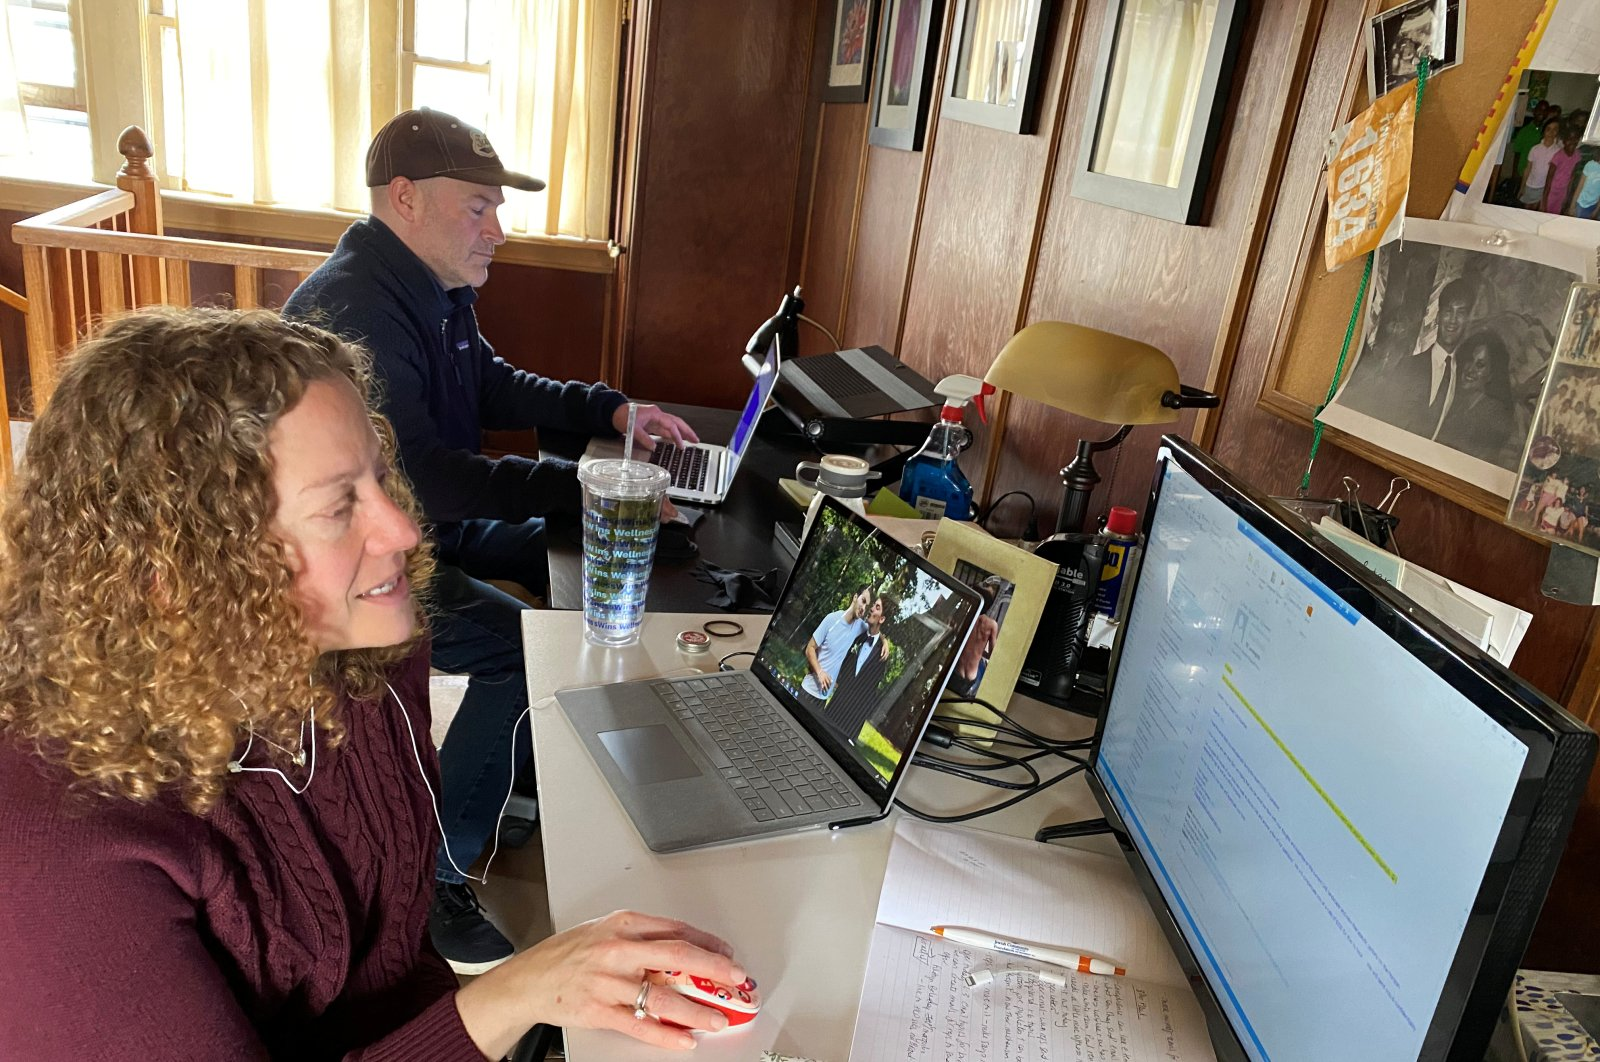 Mark Berkley and Susan Halper Berkley work from home due to COVID-19 restrictions in Maplewood, New Jersey, March 18, 2020. (REUTERS Photo)